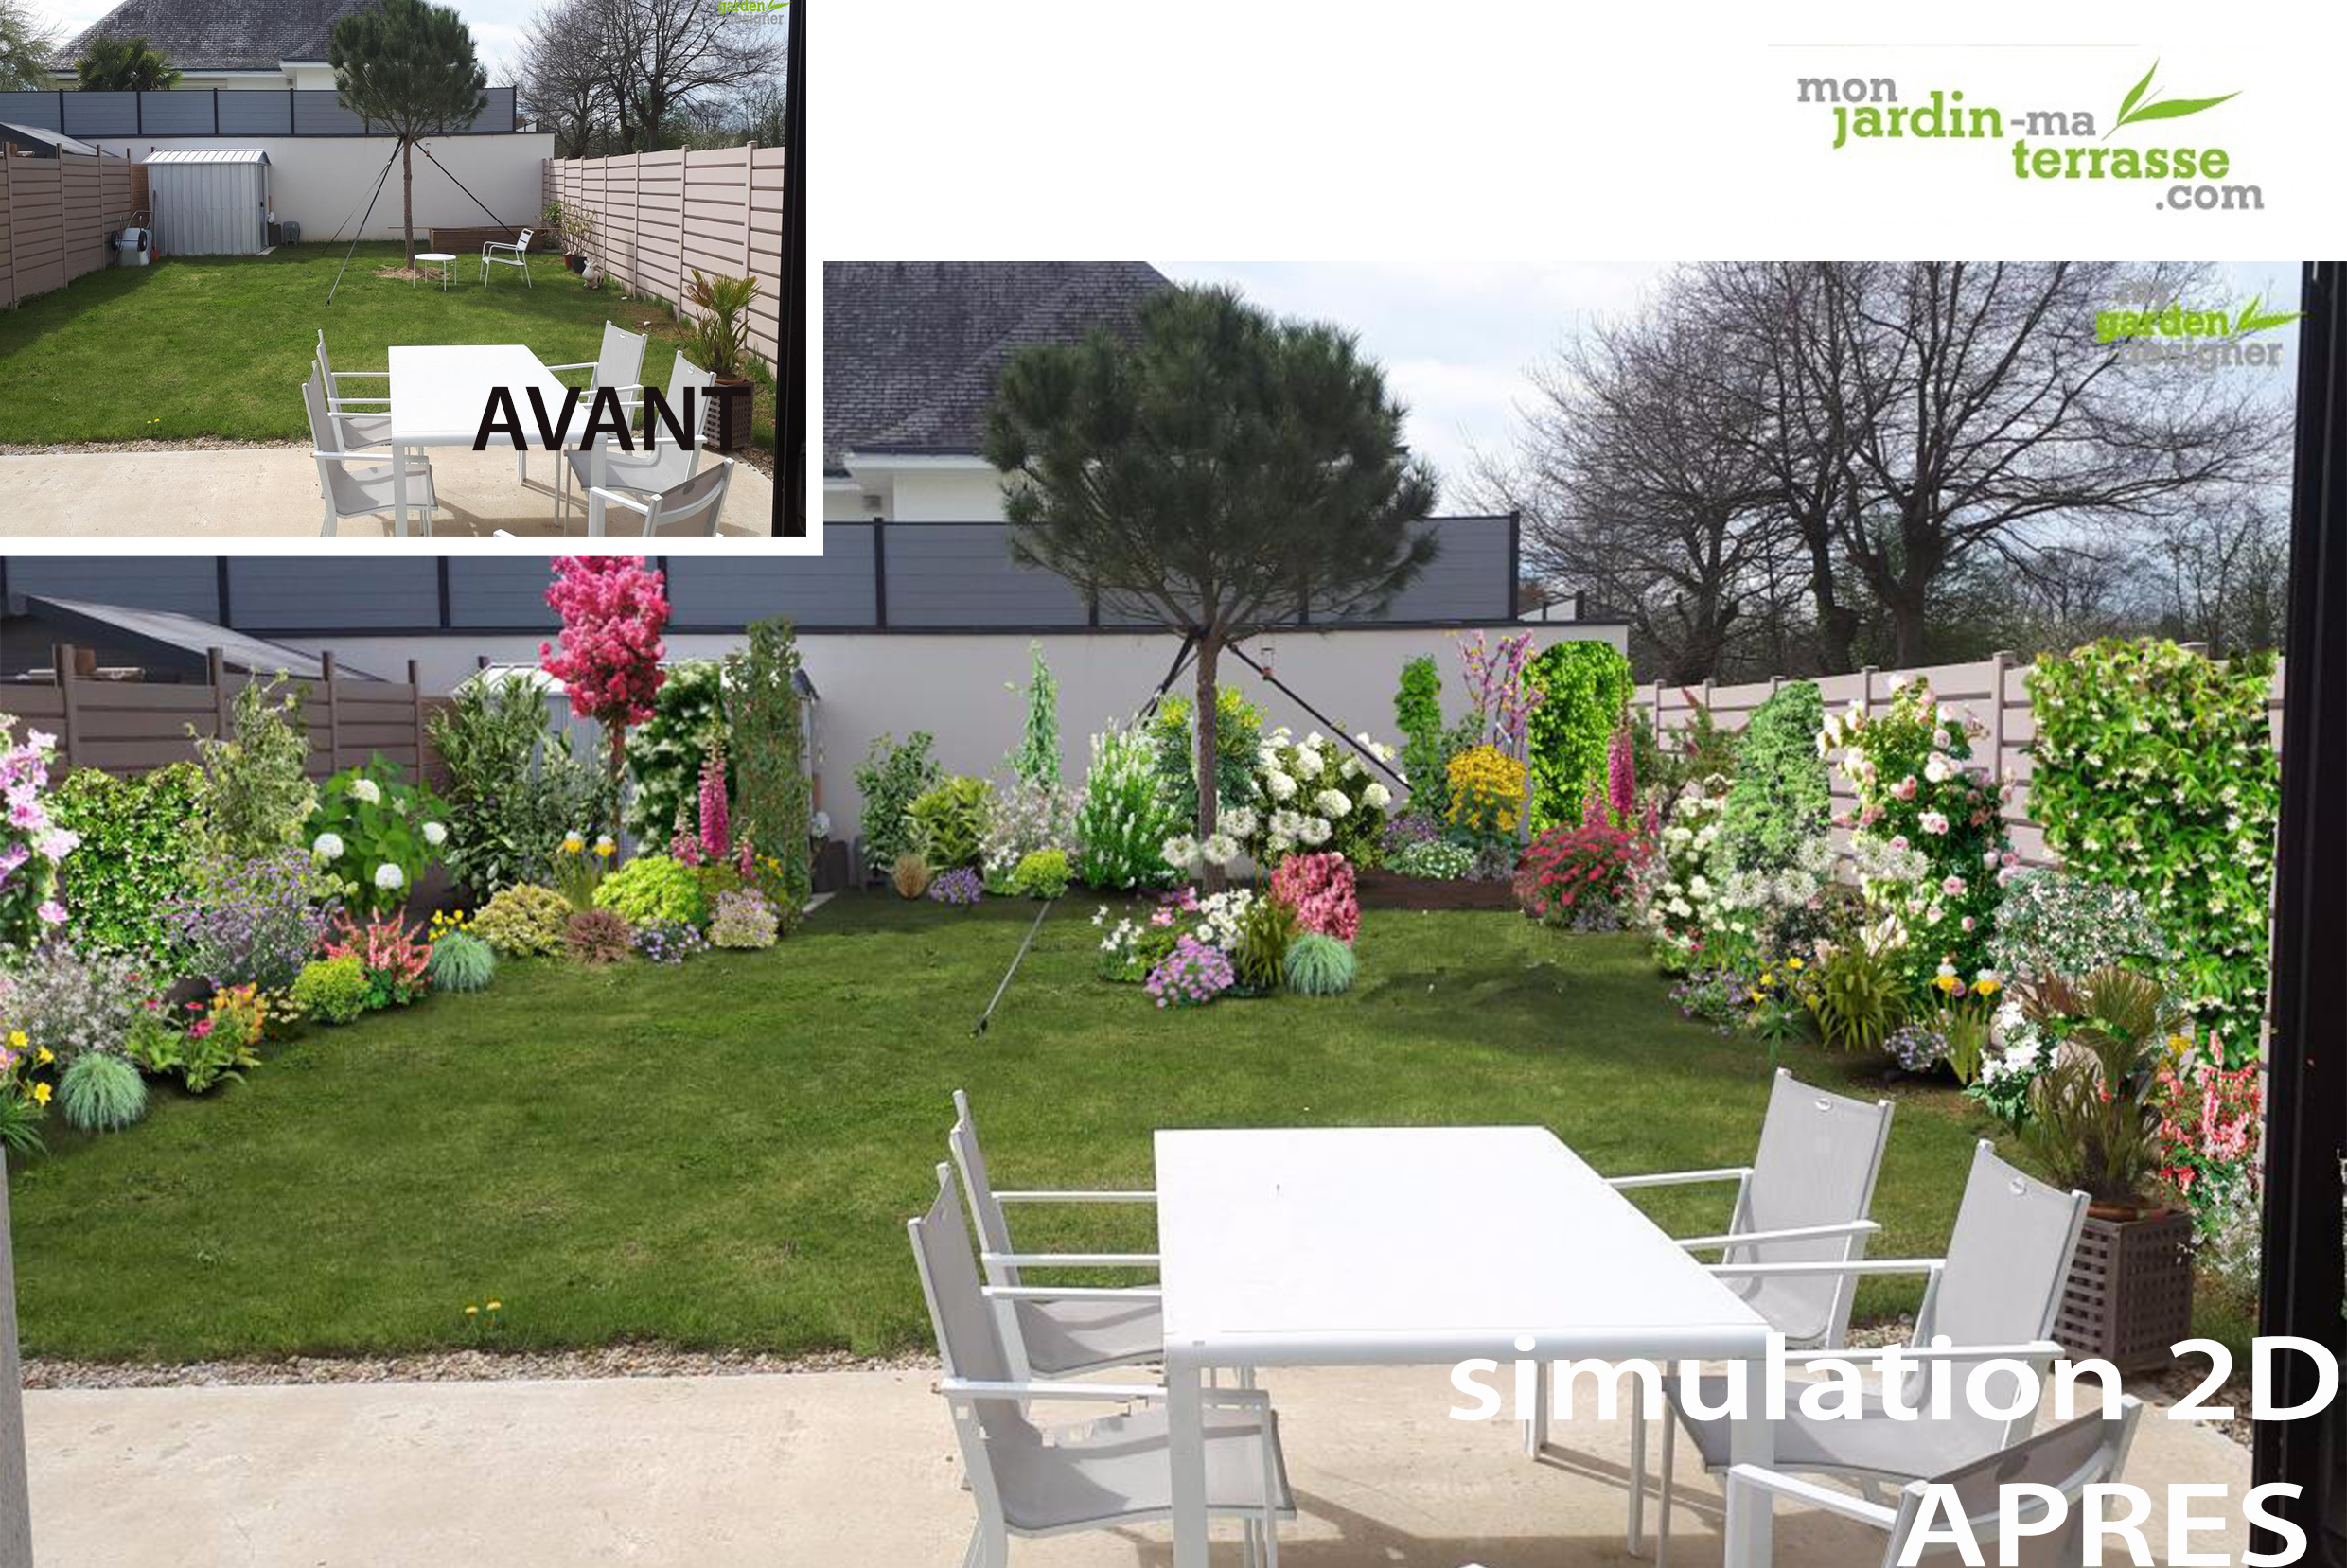 comment am nager un petit jardin rectangulaire monjardin On amenager un petit jardin